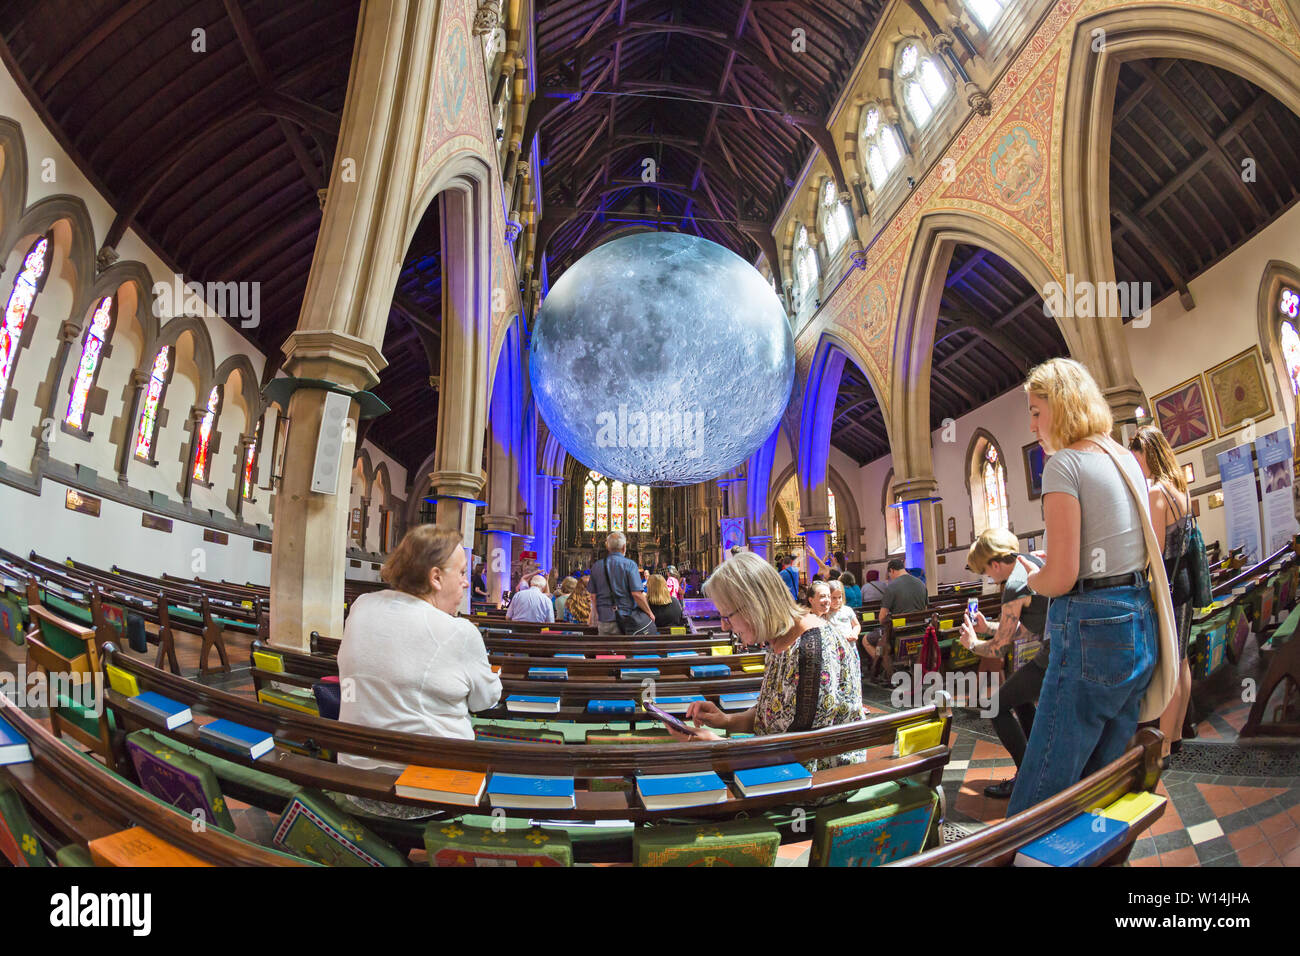 Bournemouth, Dorset, UK. 30th June, 2019. Dorset Moon, a celebration of the first moon landing 50 years ago featuring Luke Jerram's internationally acclaimed Museum of the Moon measuring 7meters in diameter. A full programme of free lunar-inspired events creating an experience that is out of this world takes place in St Peters Church. Taken with a fish-eye lens. Credit: Carolyn Jenkins/Alamy Live News - Stock Image